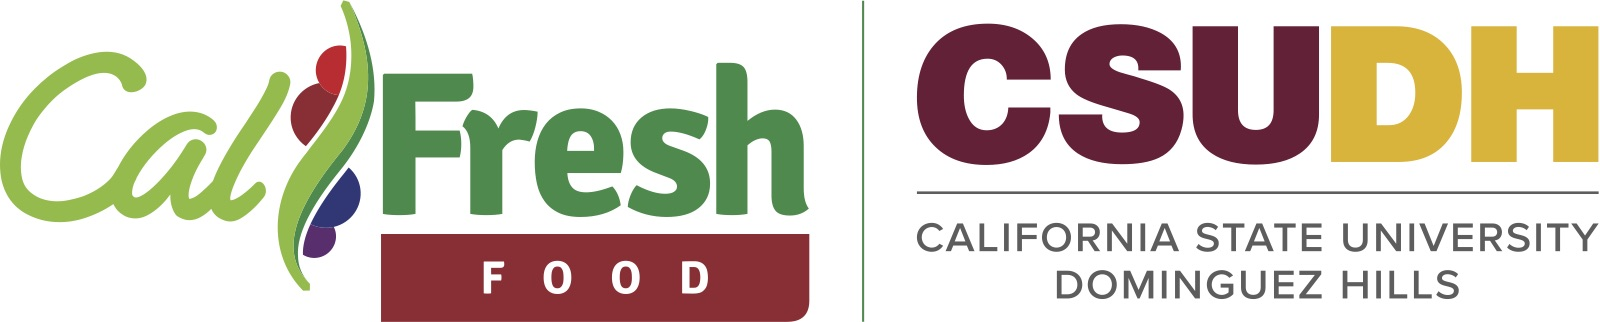 What Can I Buy Calfresh